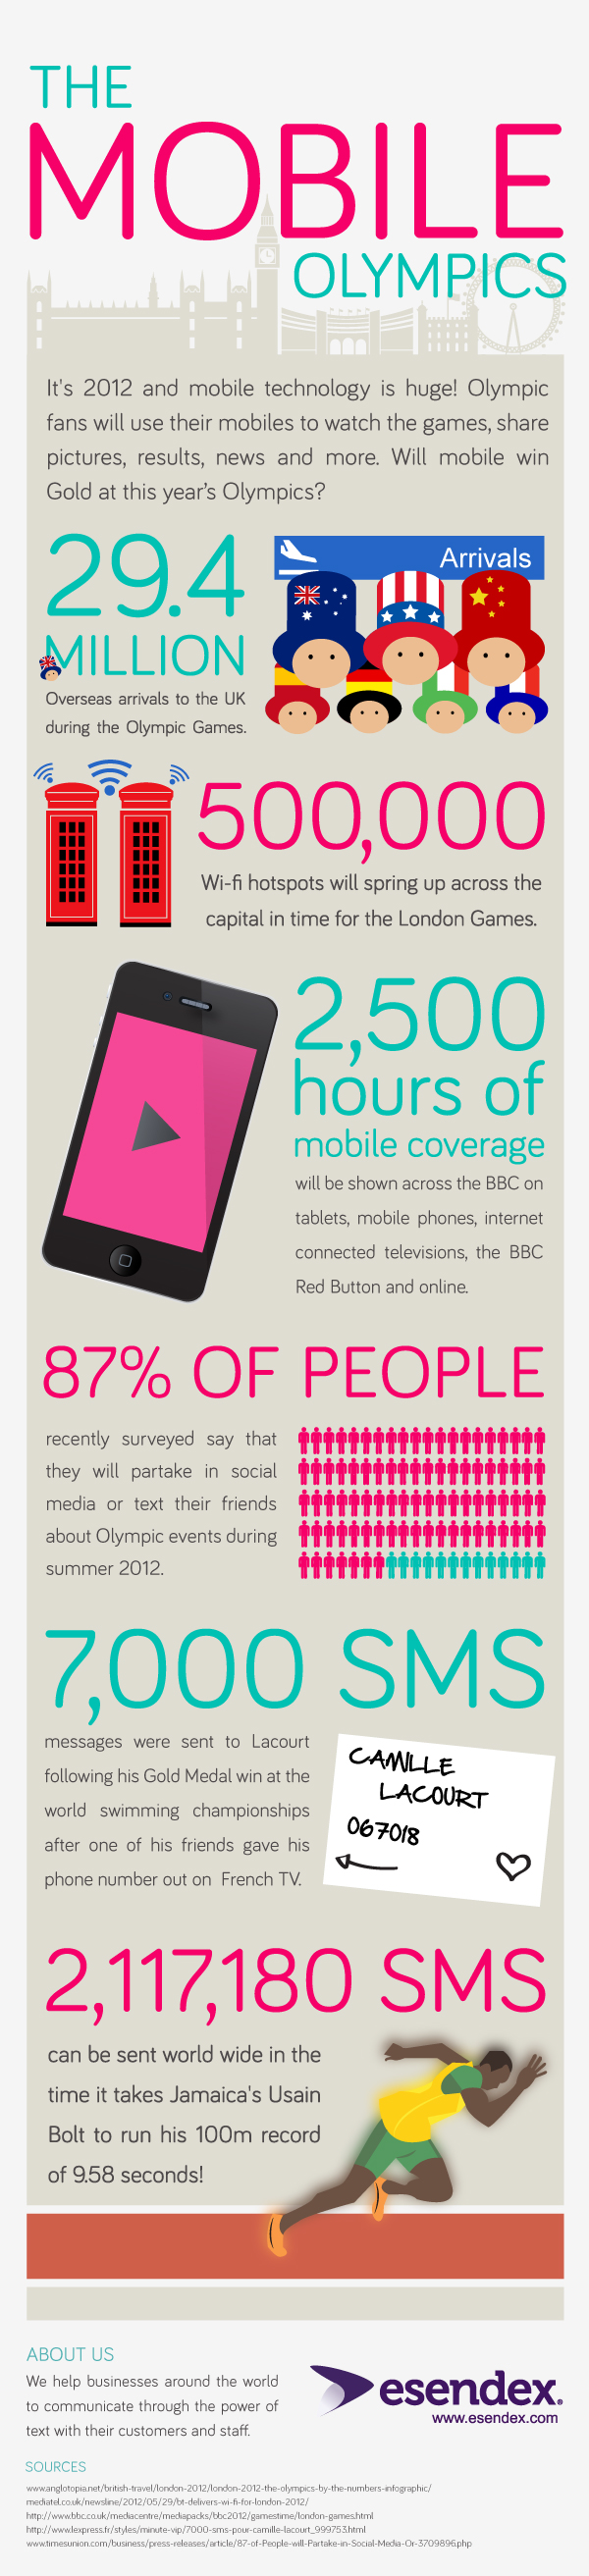 The Esendex mobile olympics infographic